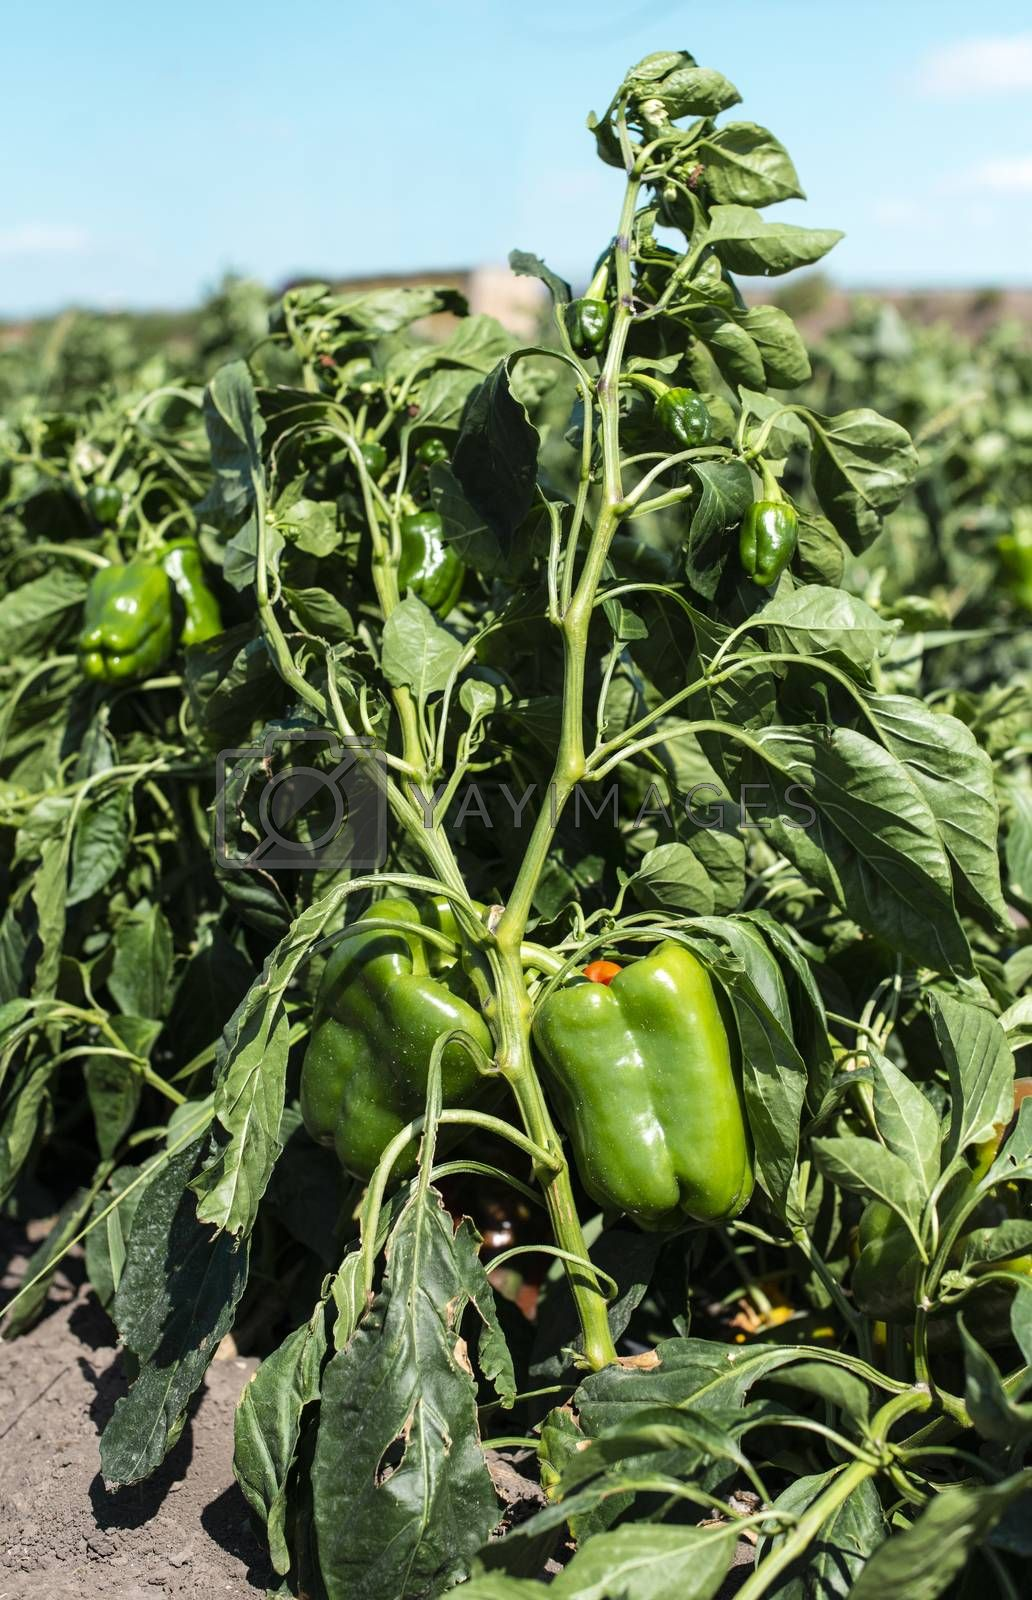 Growing green peppers on the field. Natural growing vegetables in farm.